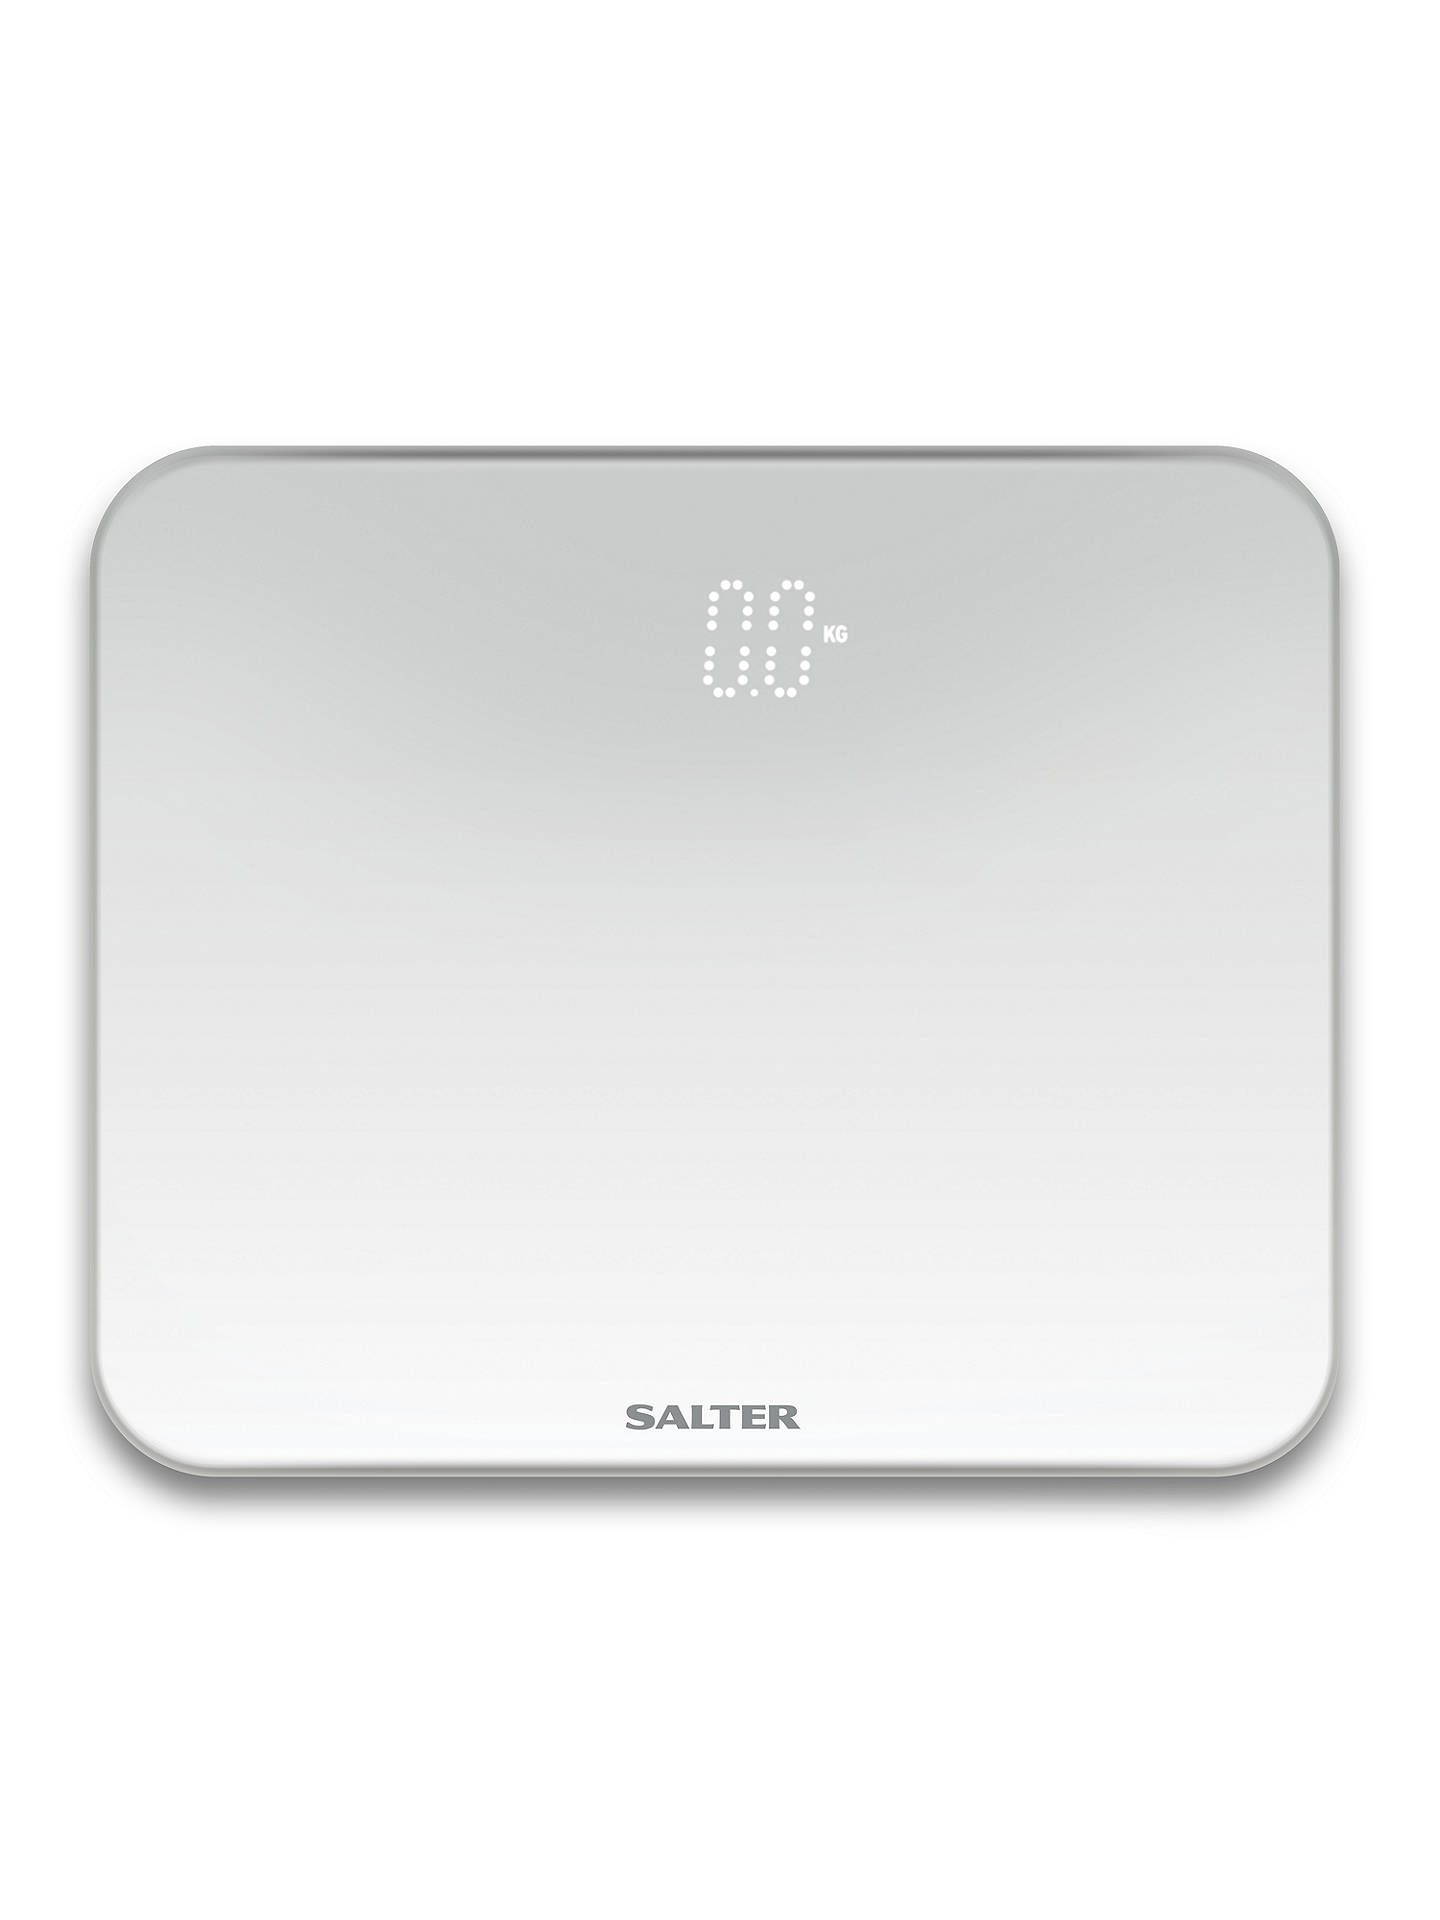 Salter 9204 Led Bathroom Scale Ghost Led Scale